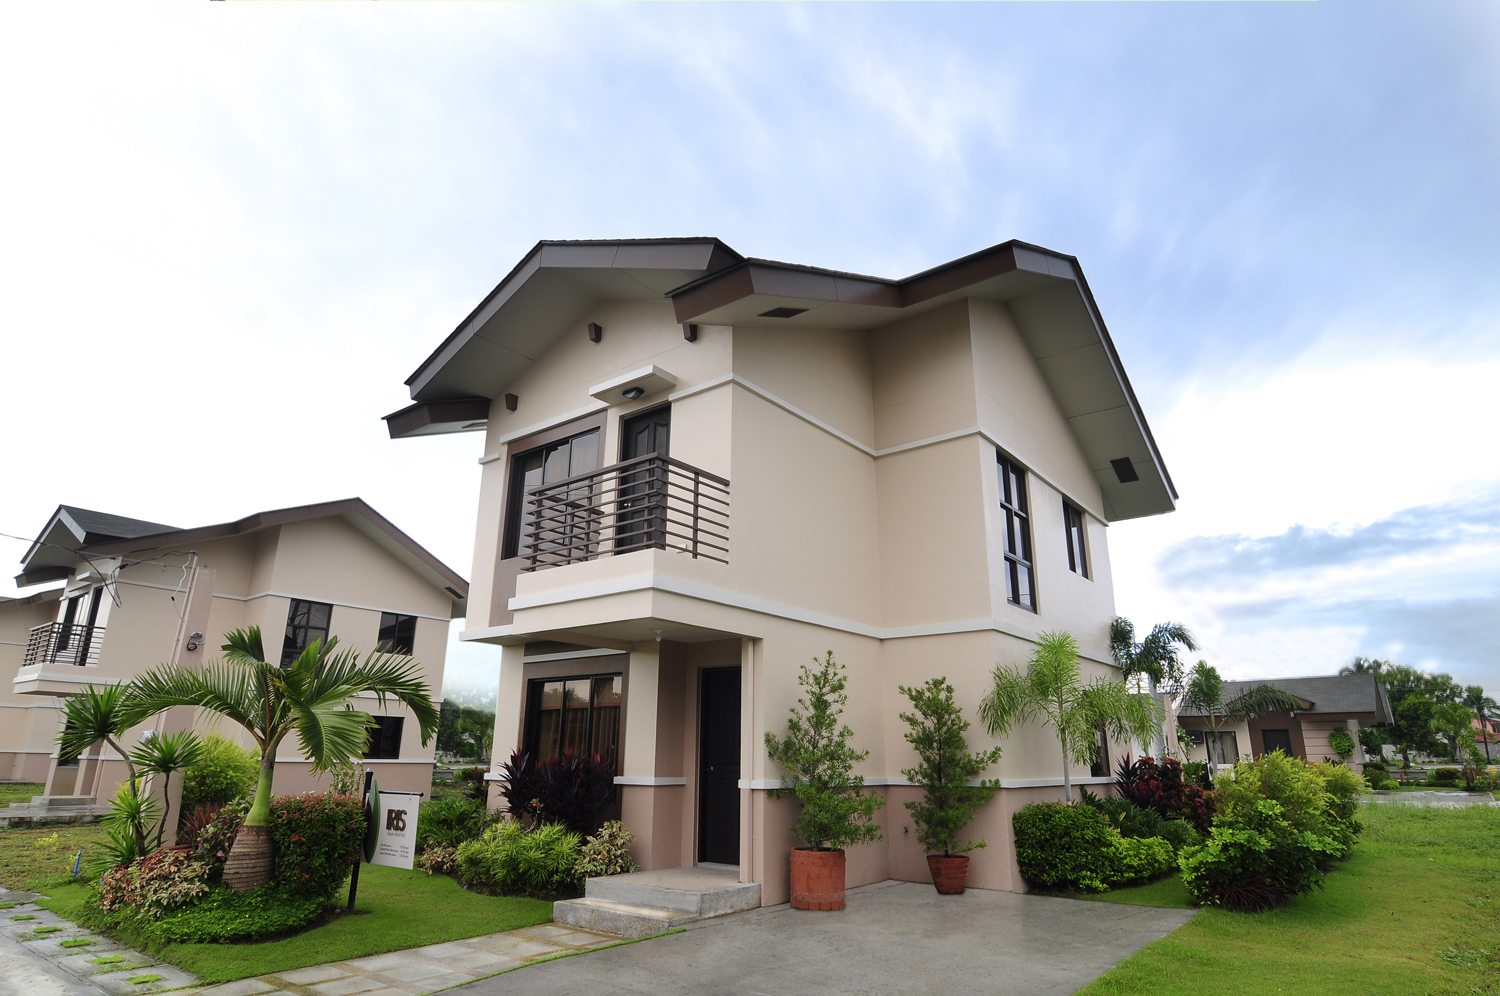 Willow park homes cabuyao laguna dmci homes for The willow house